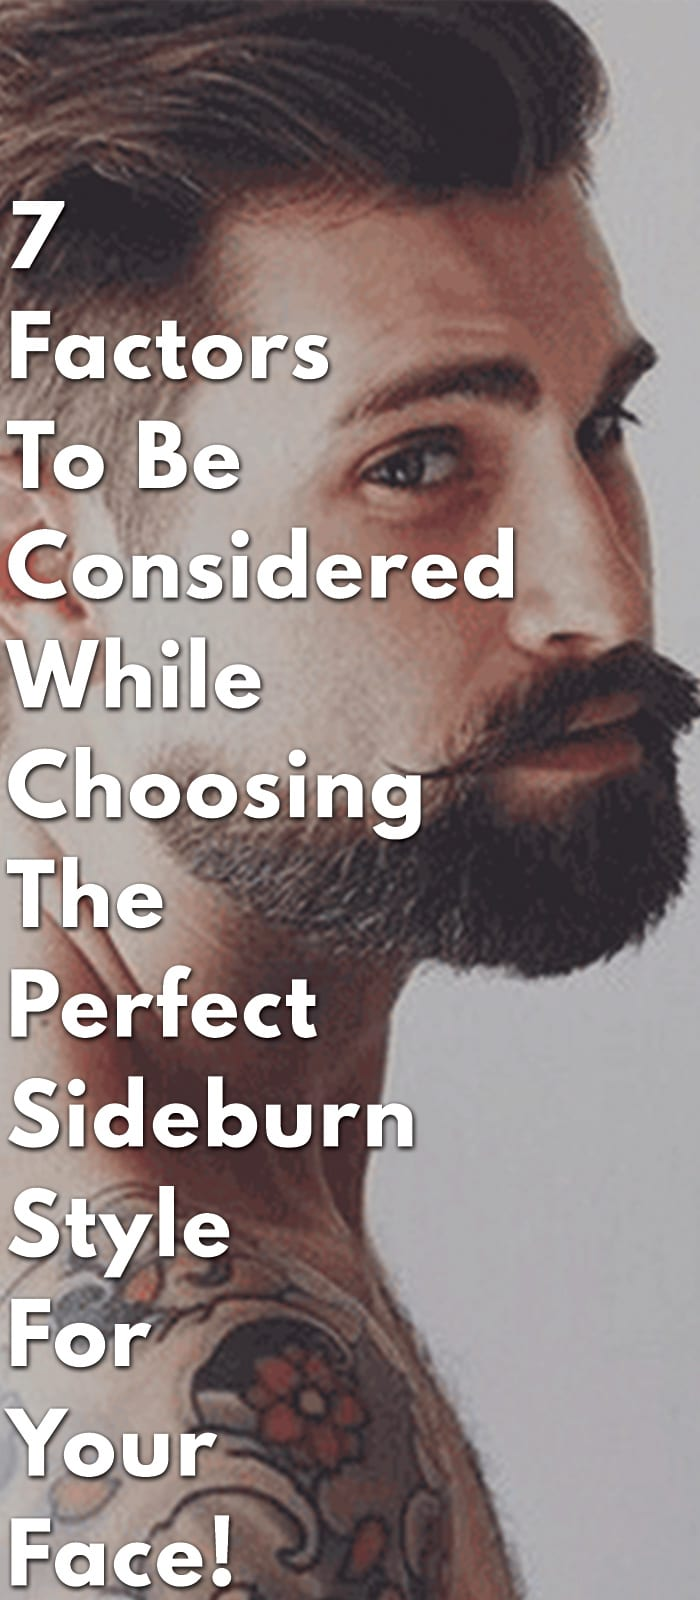 7-Factors-To-Be-Considered-While-Choosing-The-Perfect-Sideburn-Style-for-Your-Face!